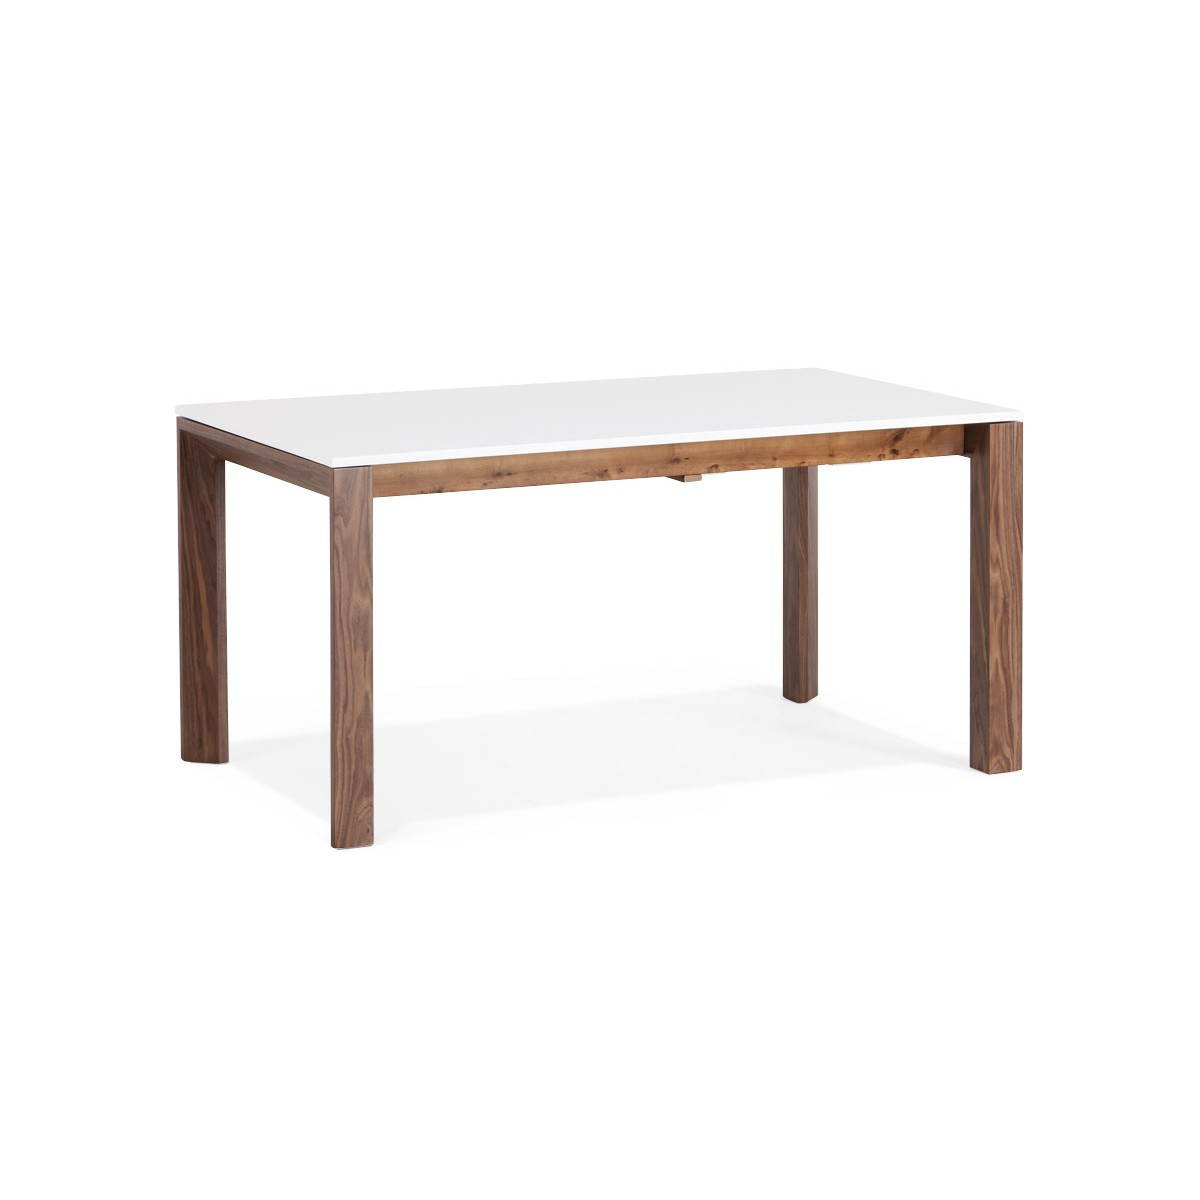 Table design rectangulaire avec rallonge loulou en bois blanc english eng - Table carree avec rallonge ...